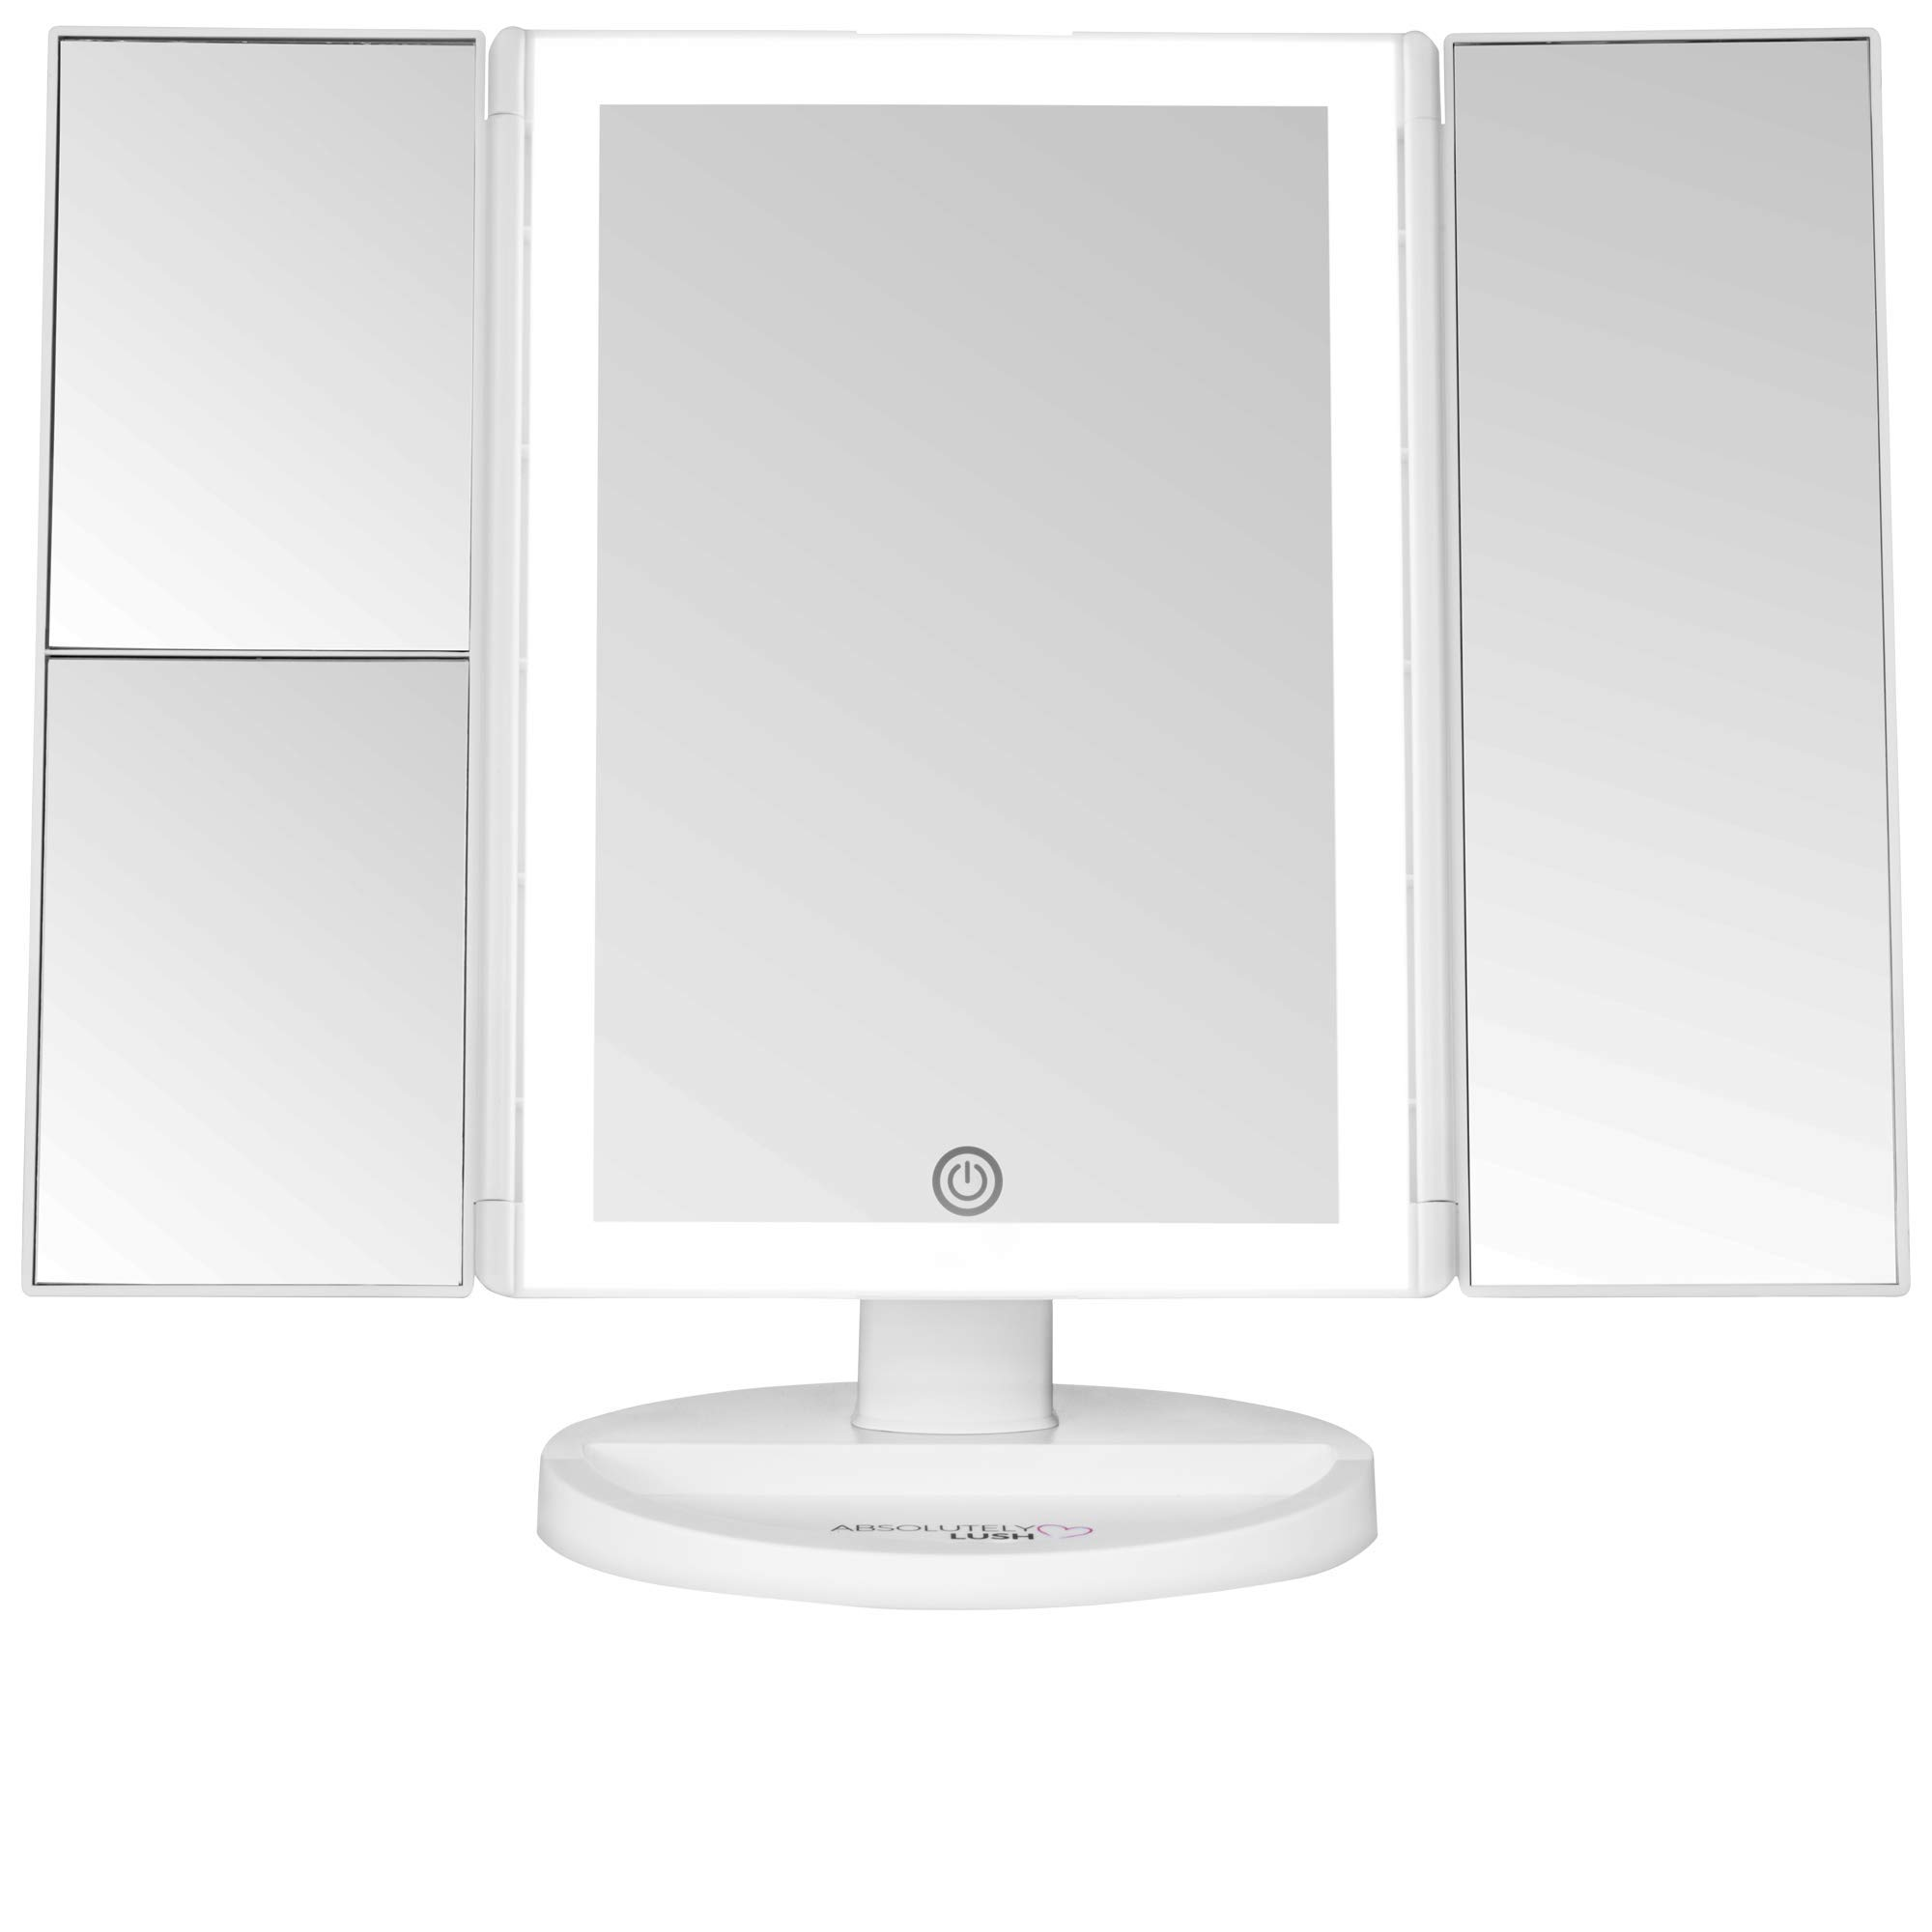 Absolutely Lush Lighted Makeup Mirror Vanity Mirror with Lights, Touch Screen Dimming, Tri-Fold 1x 2X 3X Magnification Sections, Portable High Definition Clarity Cosmetic Light Up Magnifying Mirror by Absolutely Lush